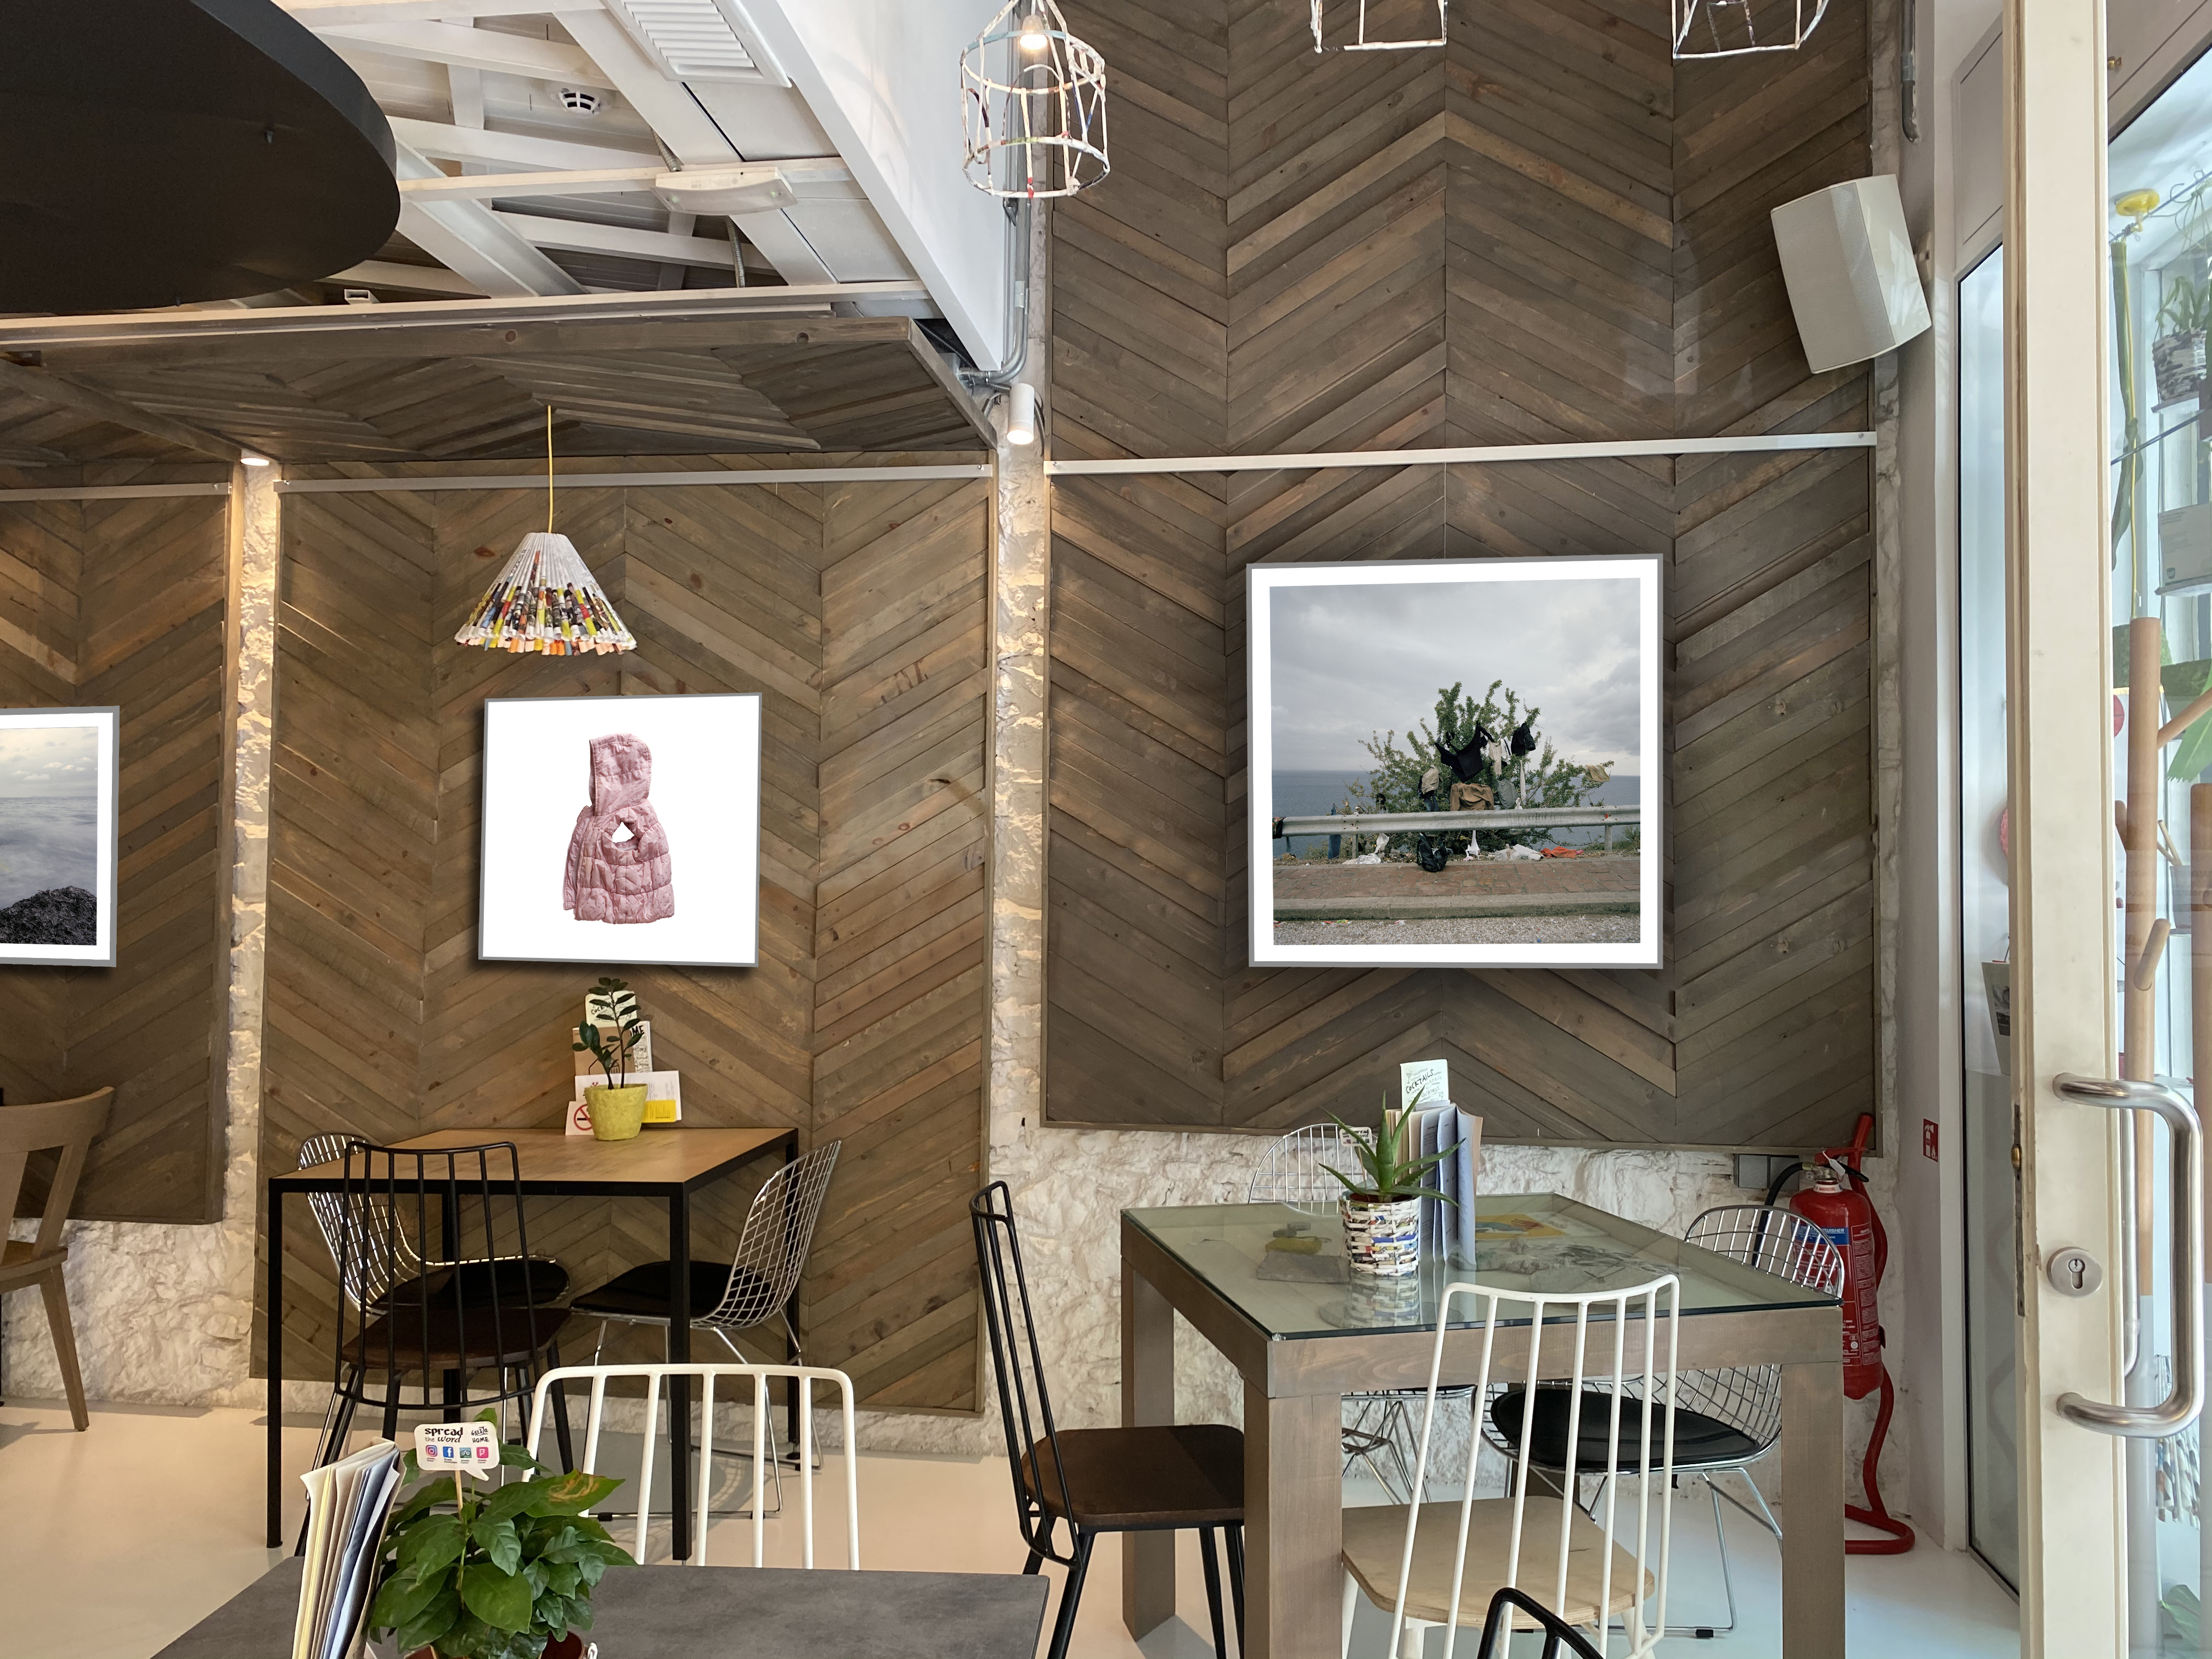 from-the-life-raft-refugee-images-find-fitting-home1